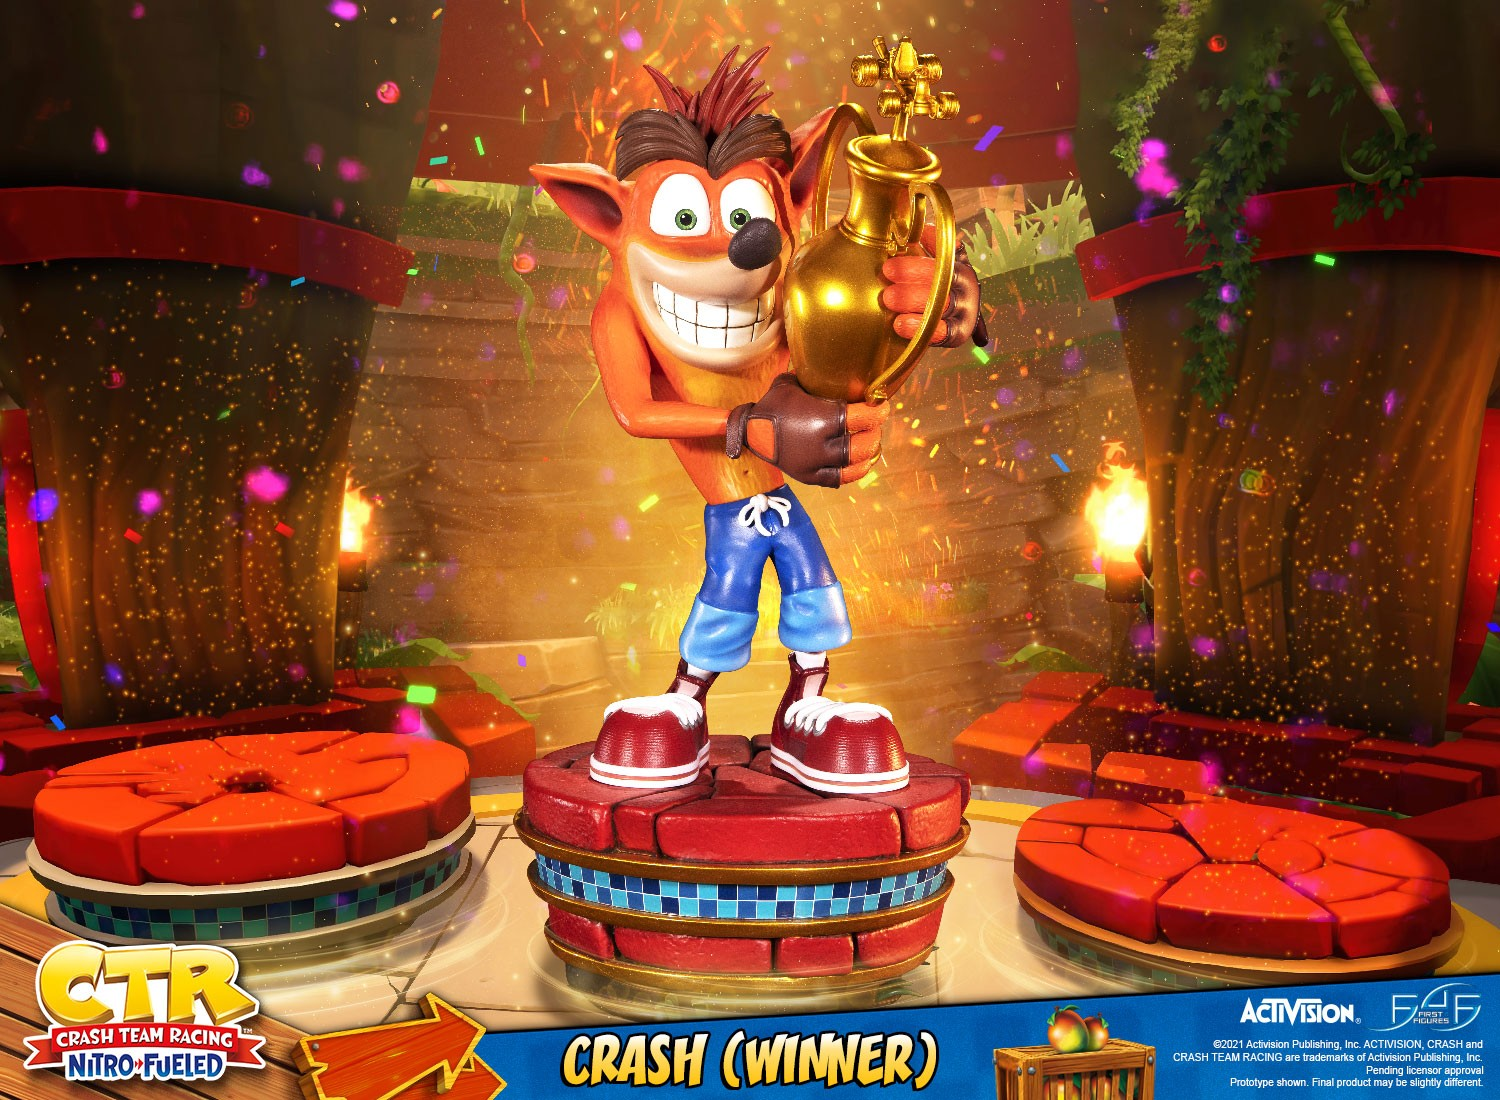 Crash Team Racing™ Nitro-Fueled – Crash (Winner) (Standard Edition)